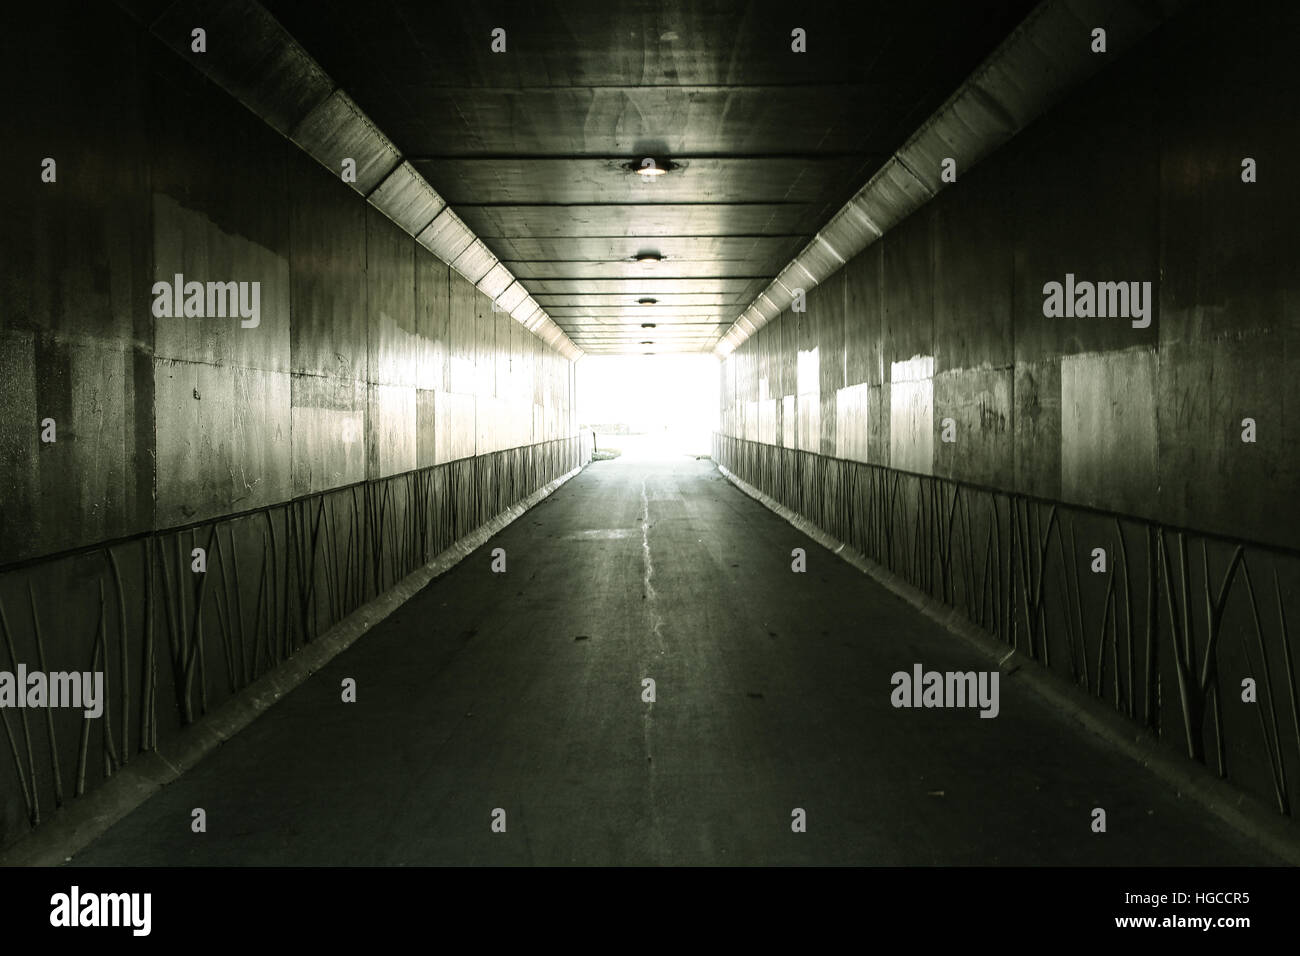 Light At The End Of The Tunnel Pedestrian tunnel illuminated by bright sunlight at the exit Stock Photo